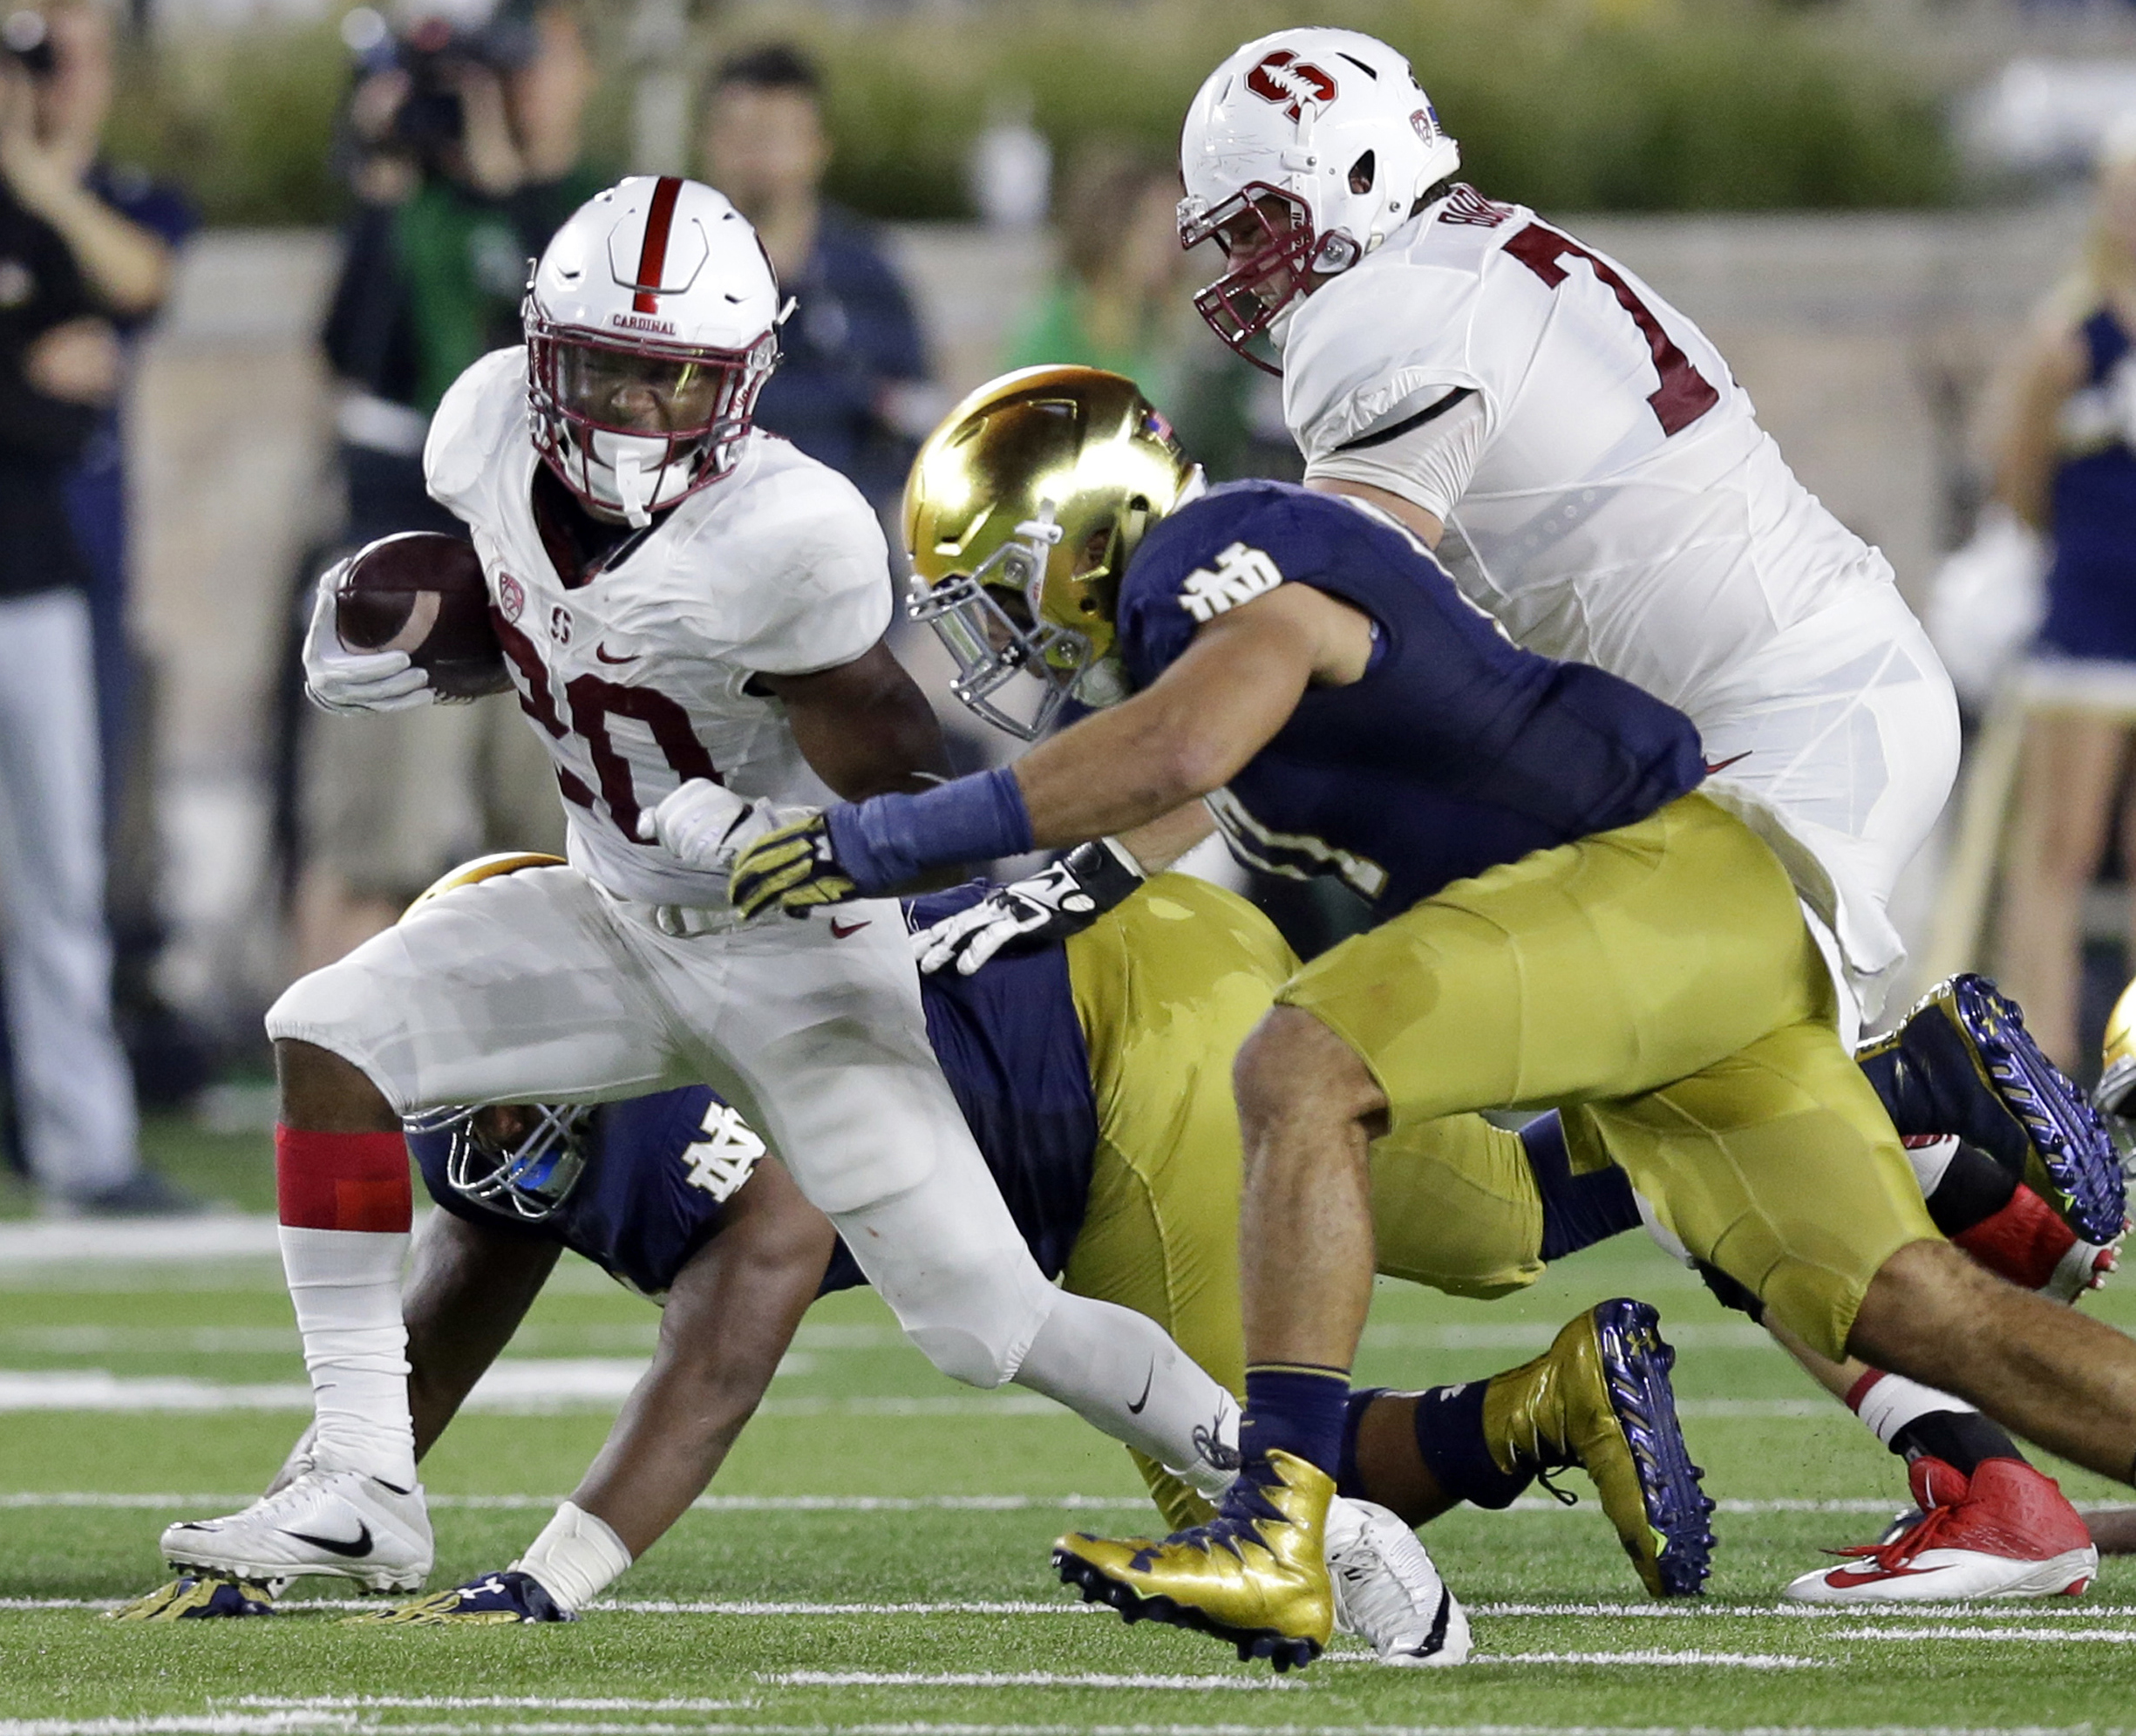 FILE - In this Oct. 15, 2016, file photo, Notre Dame linebacker James Onwualu (17) tackles Stanford running back Bryce Love (20) during the first quarter of an NCAA college football game in South Bend, Ind. Its been quite a journey for Onwualu going from